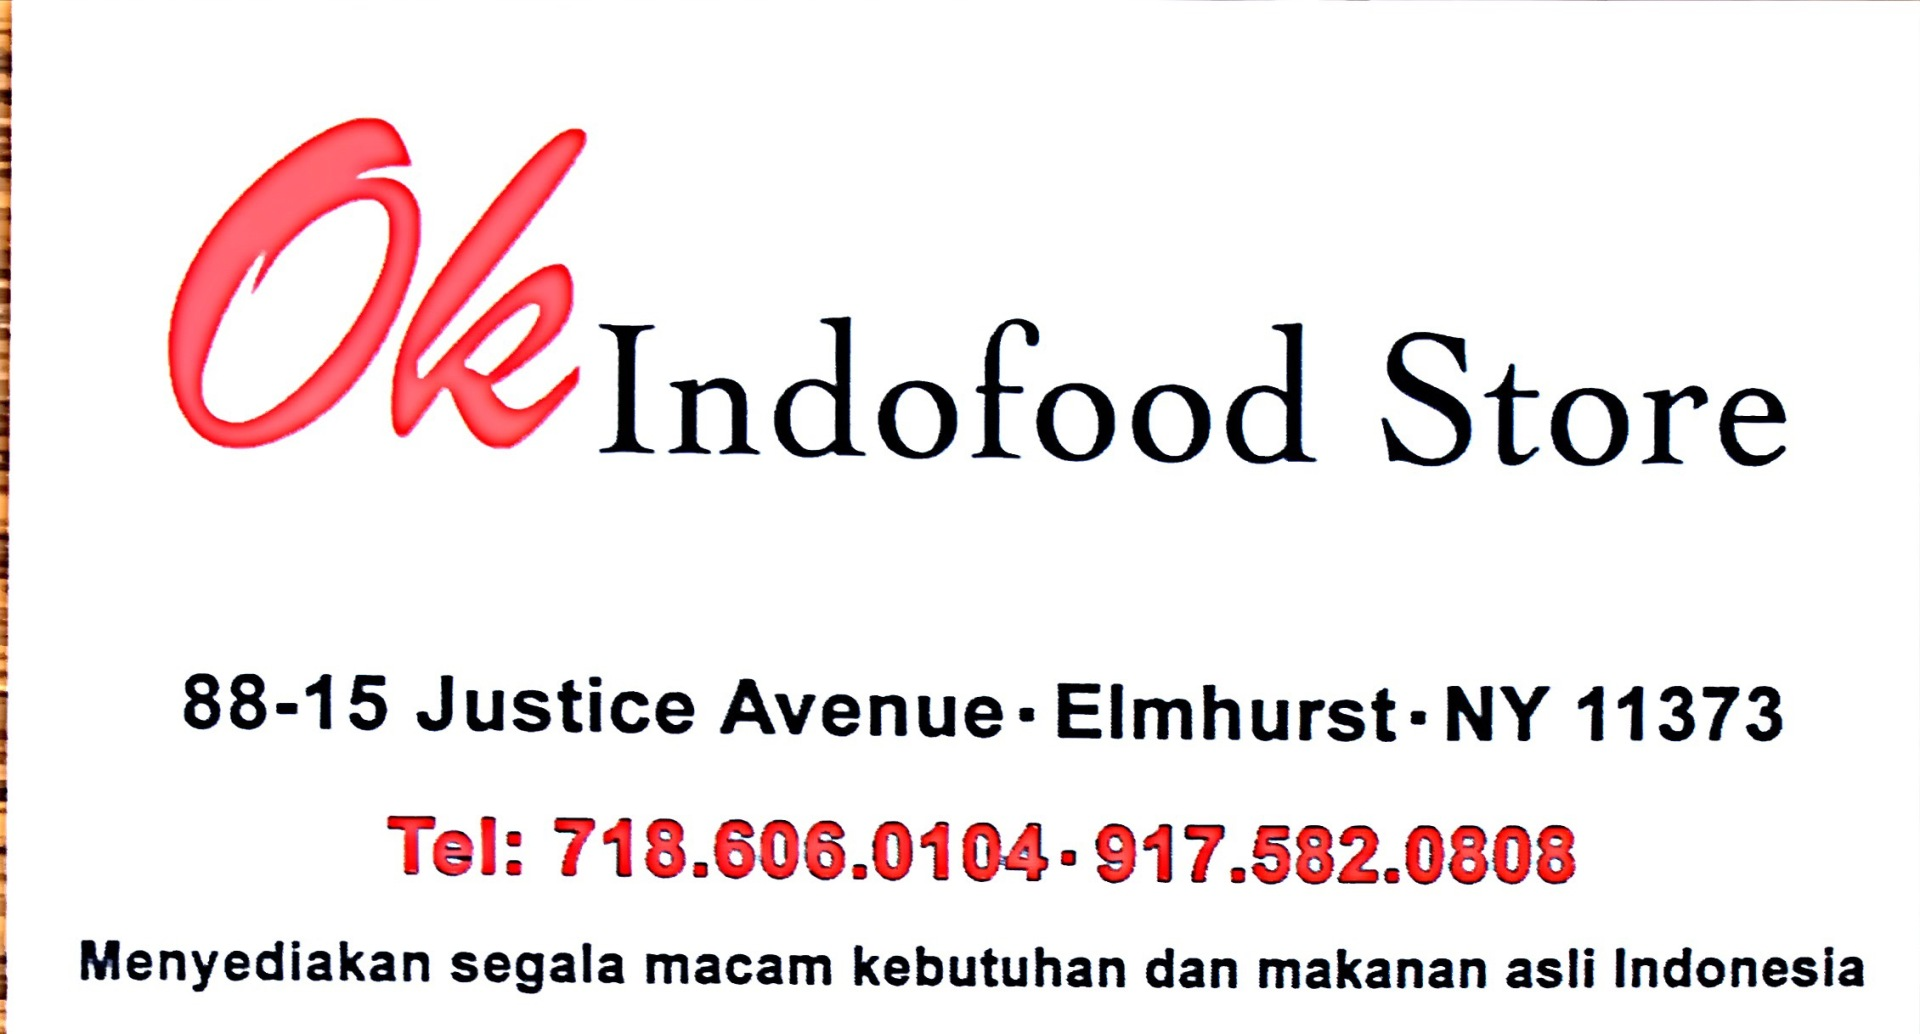 indofood essay Implementasi sistem erp di pt indofood sukses makmur 1 company profile 2 background for implementation erp system 3 implementation erp system 4.